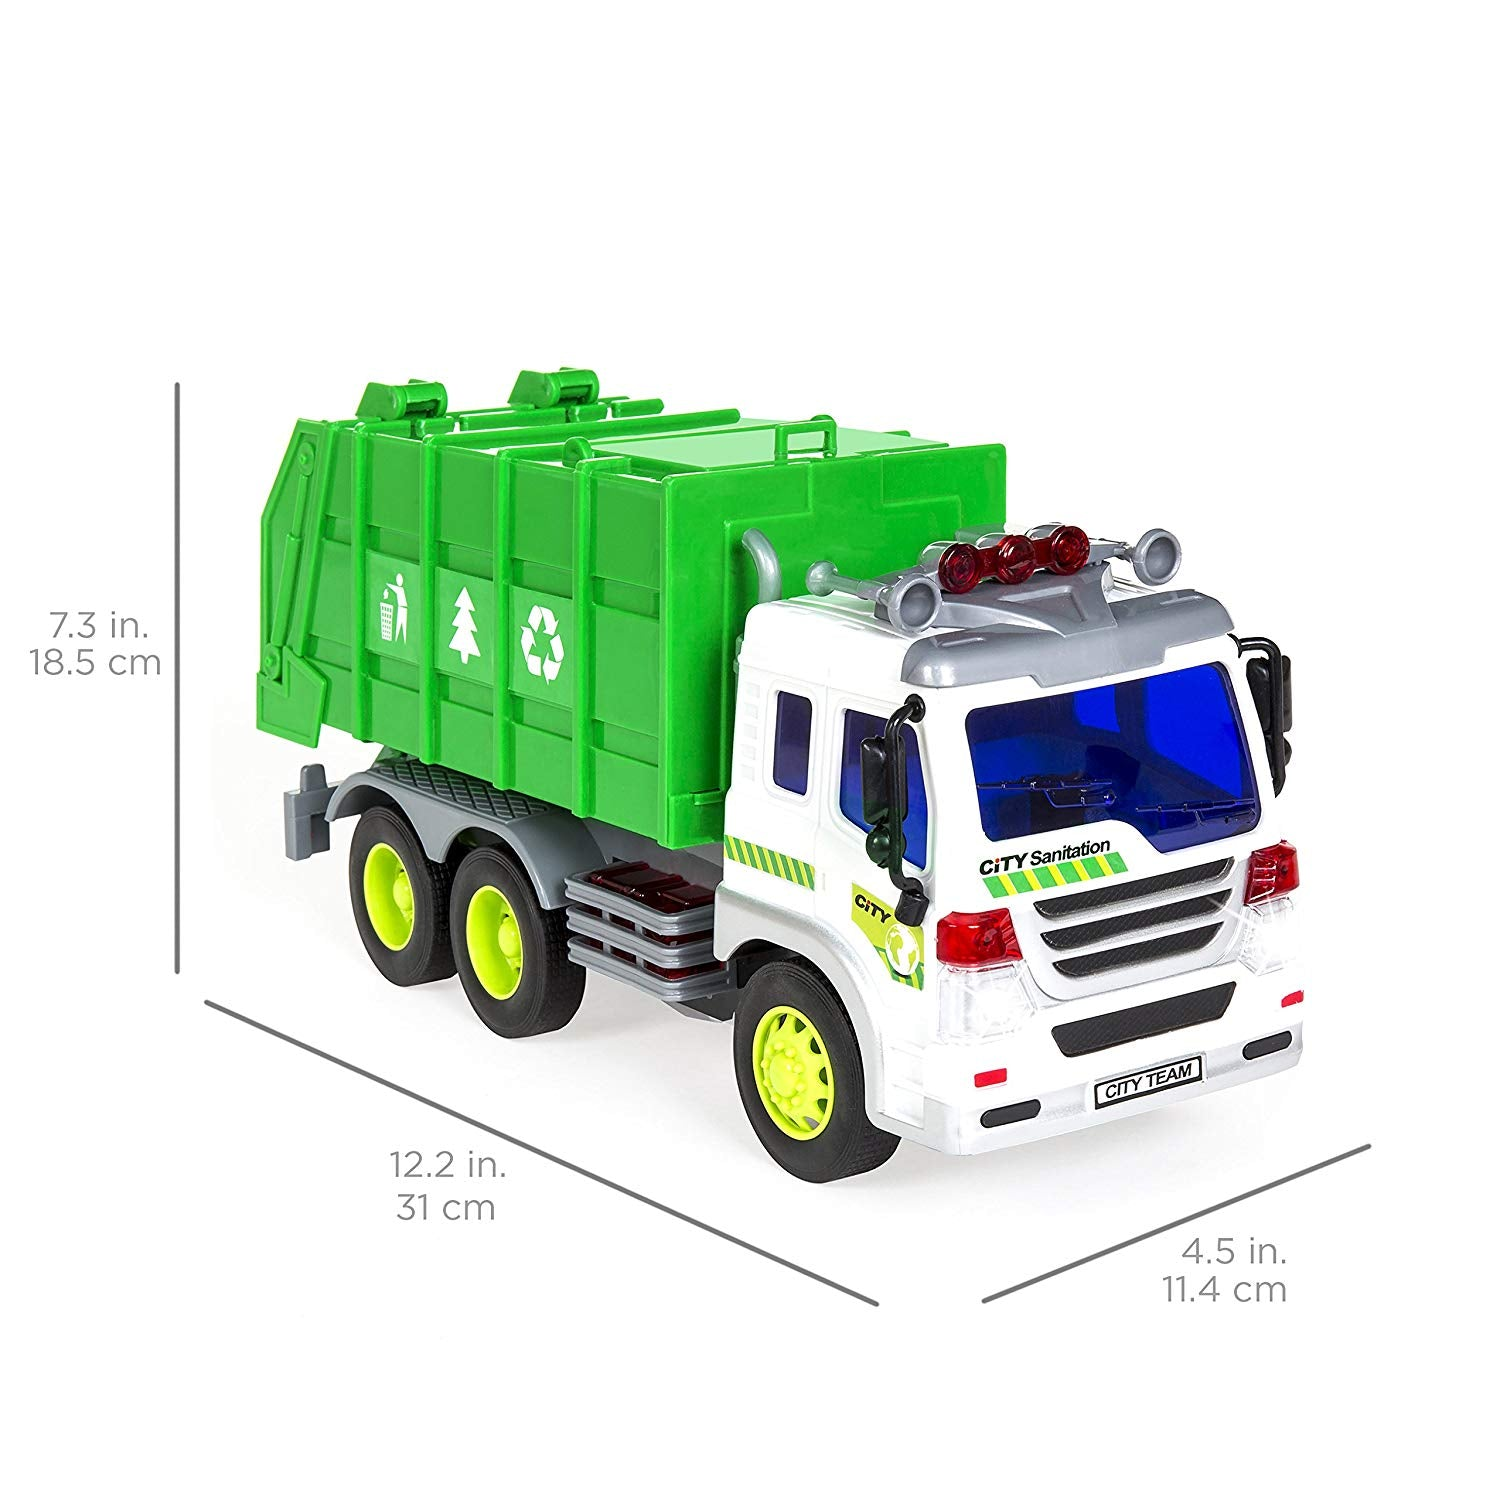 1/16 Scale Friction Powered Toy Recycling Garbage Truck w/ Lights and Sound (Green)